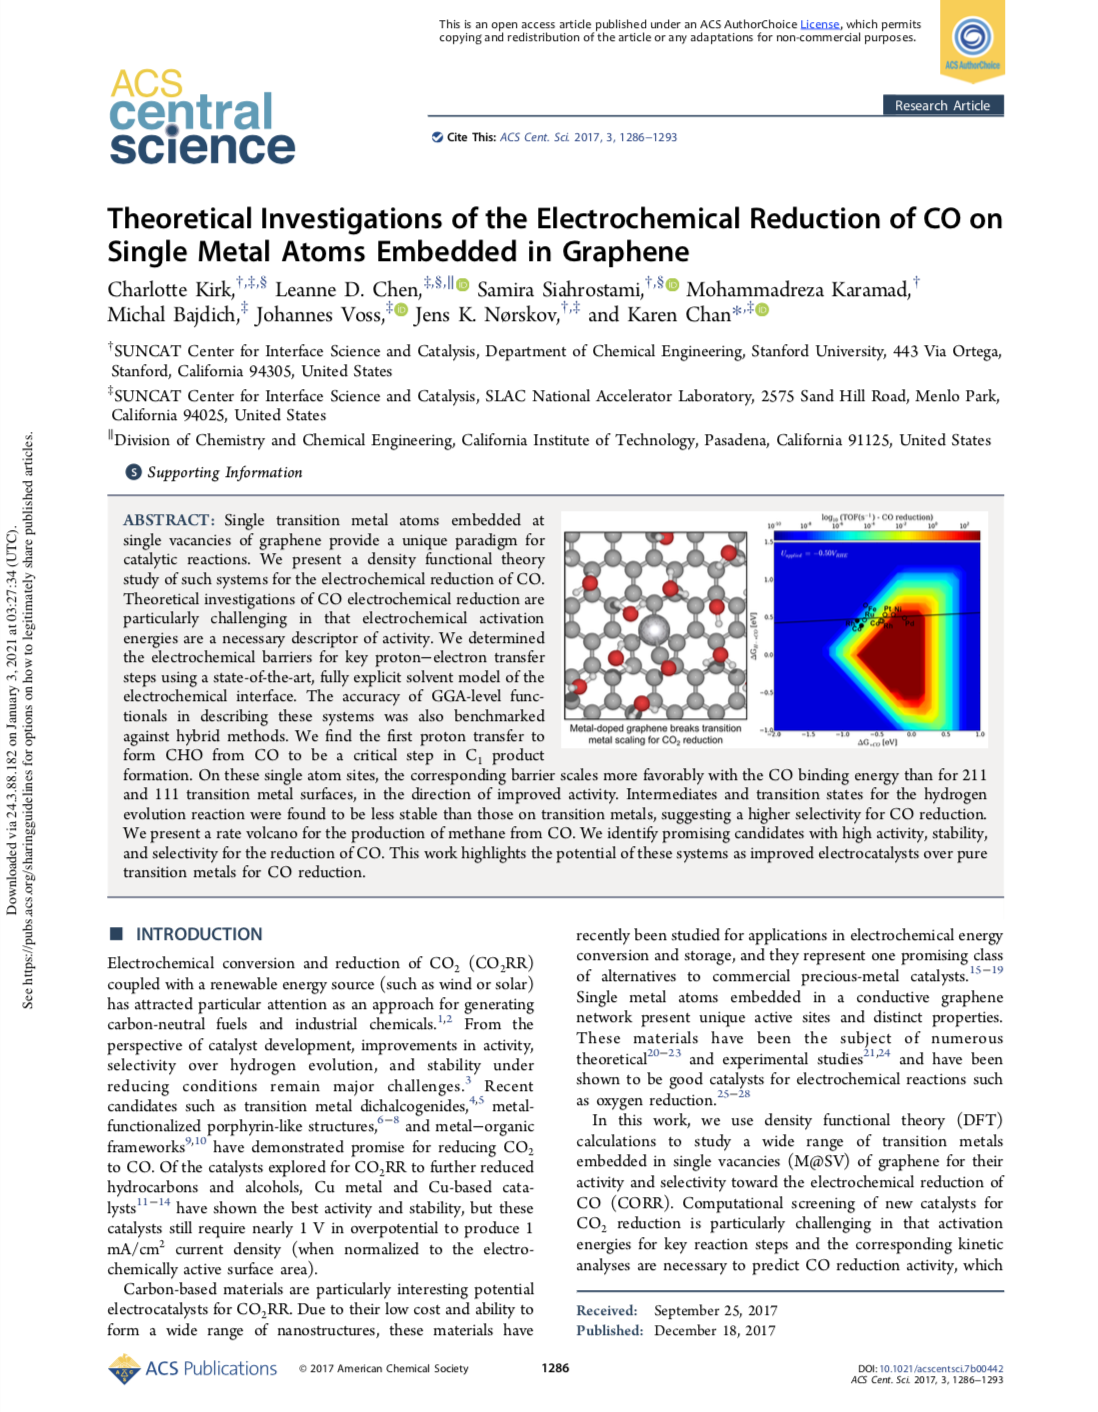 Theoretical Investigations of the Electrochemical Reduction of CO on Single Metal Atoms Embedded in